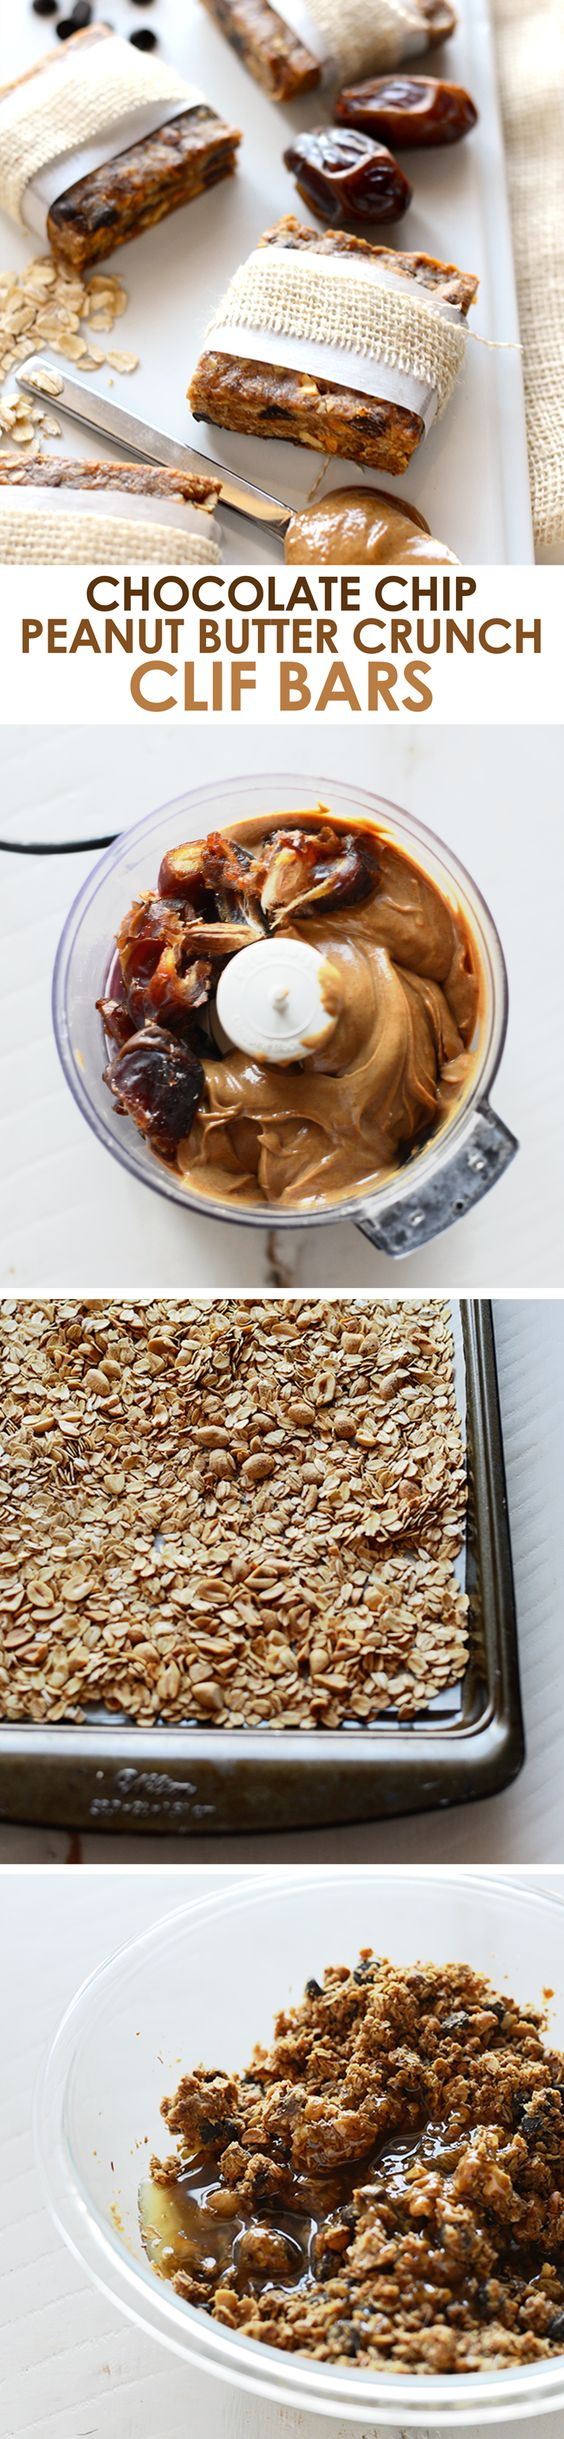 Make your own homemade clif bars with just a few simple ingredients! They're gluten and refined-sugar free making them a healthy snack!